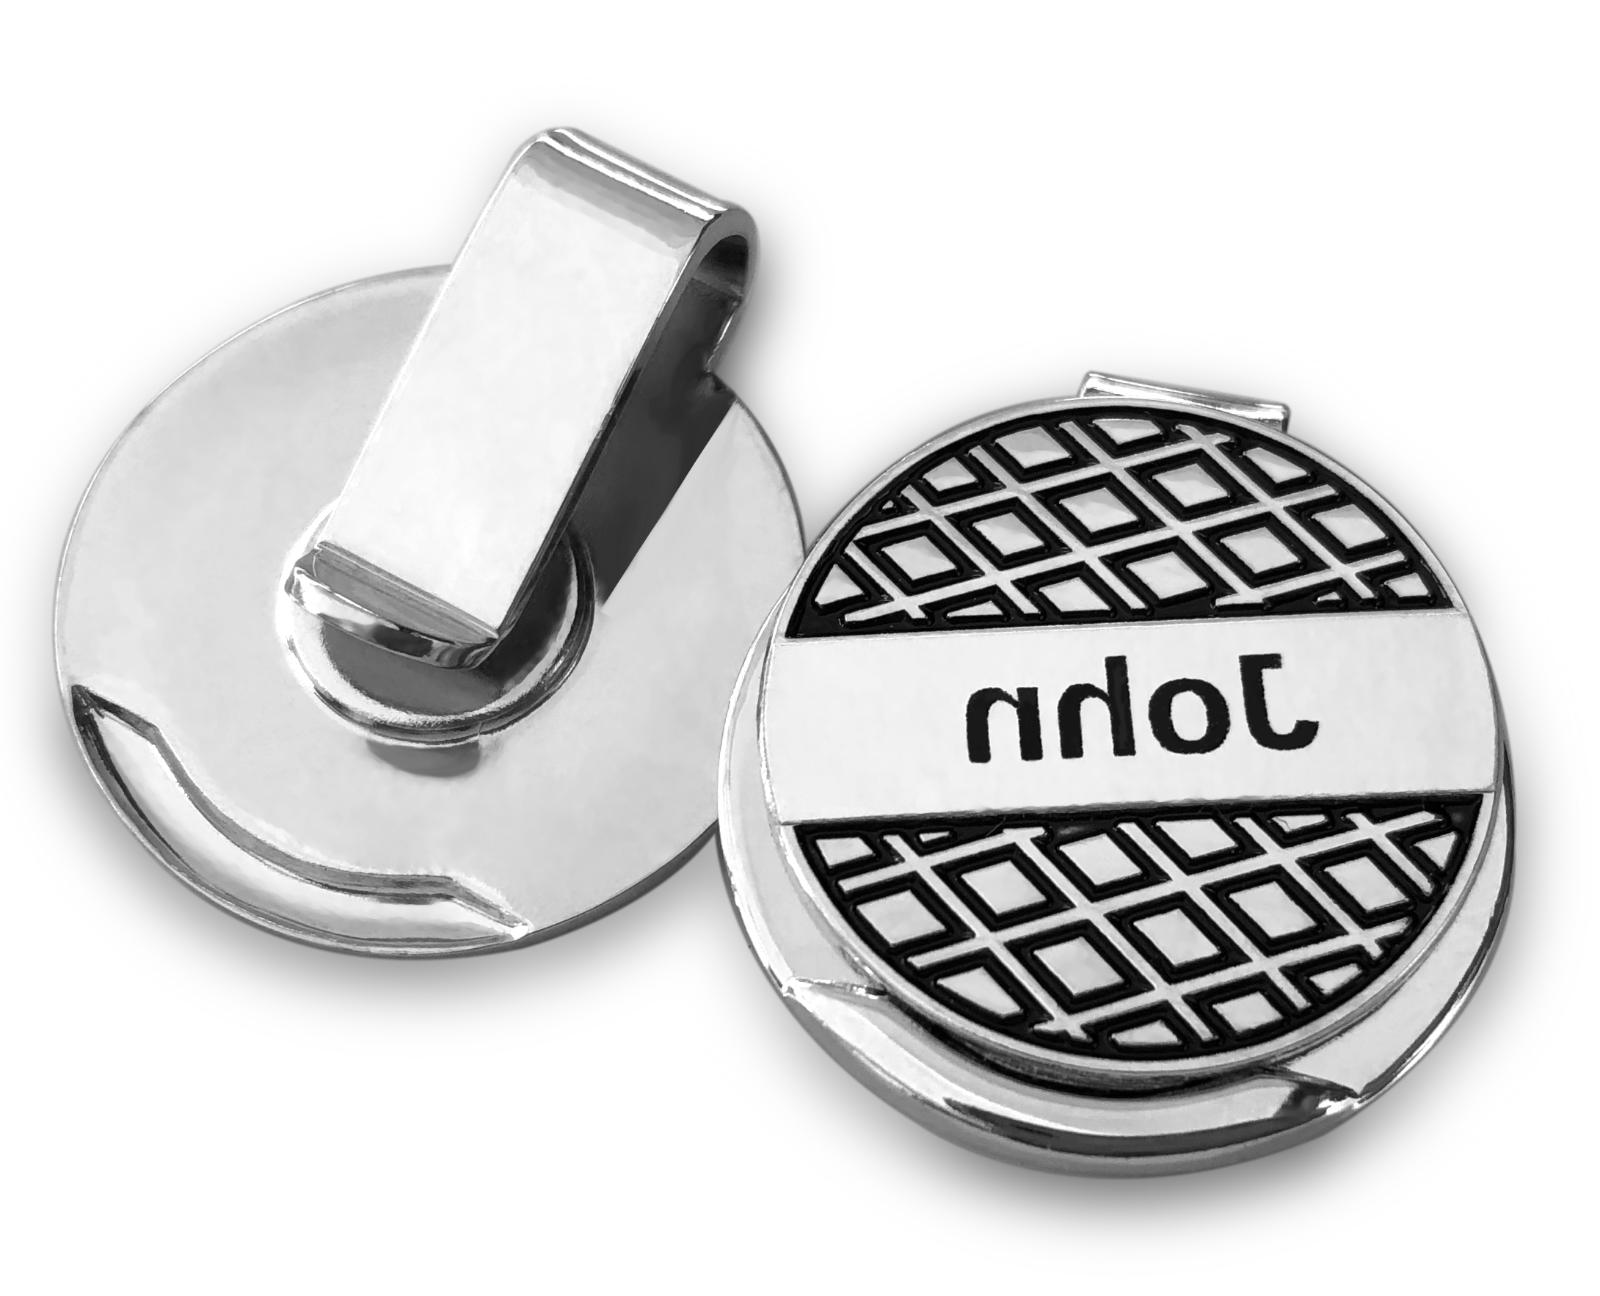 2 personalized golf ball marker and hat